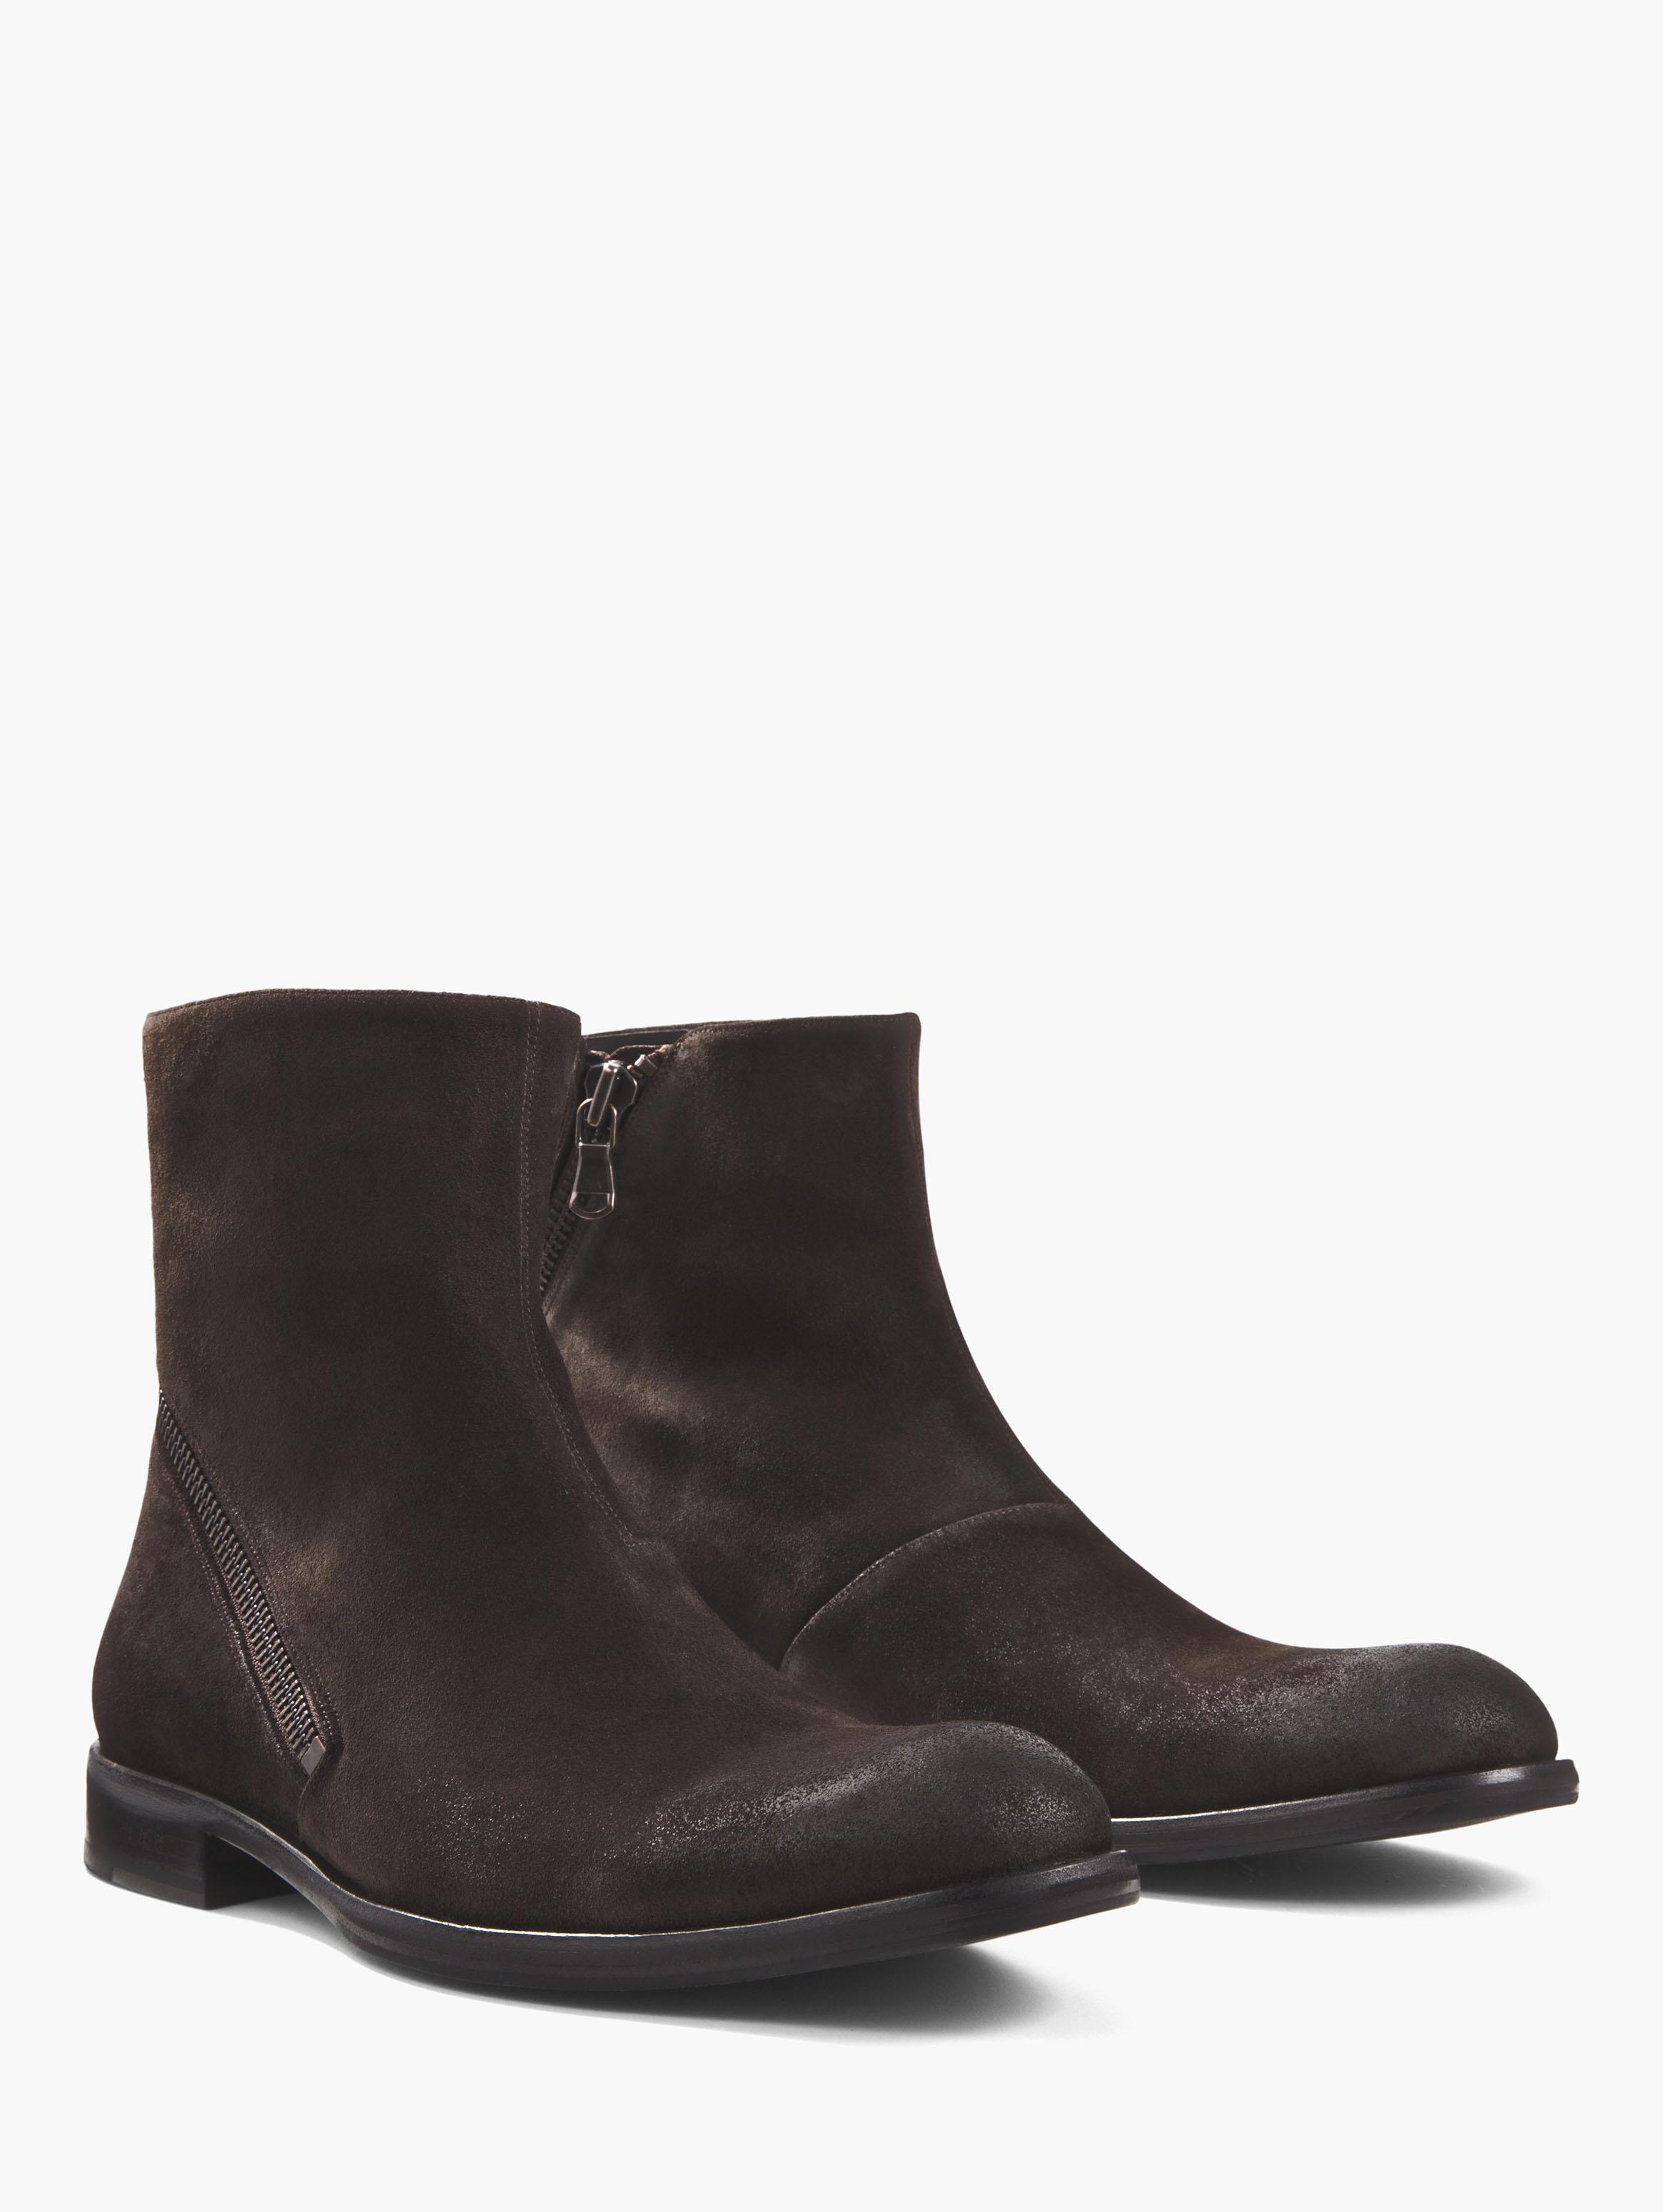 WAVERLY ASYMMETRICAL ZIP BOOT